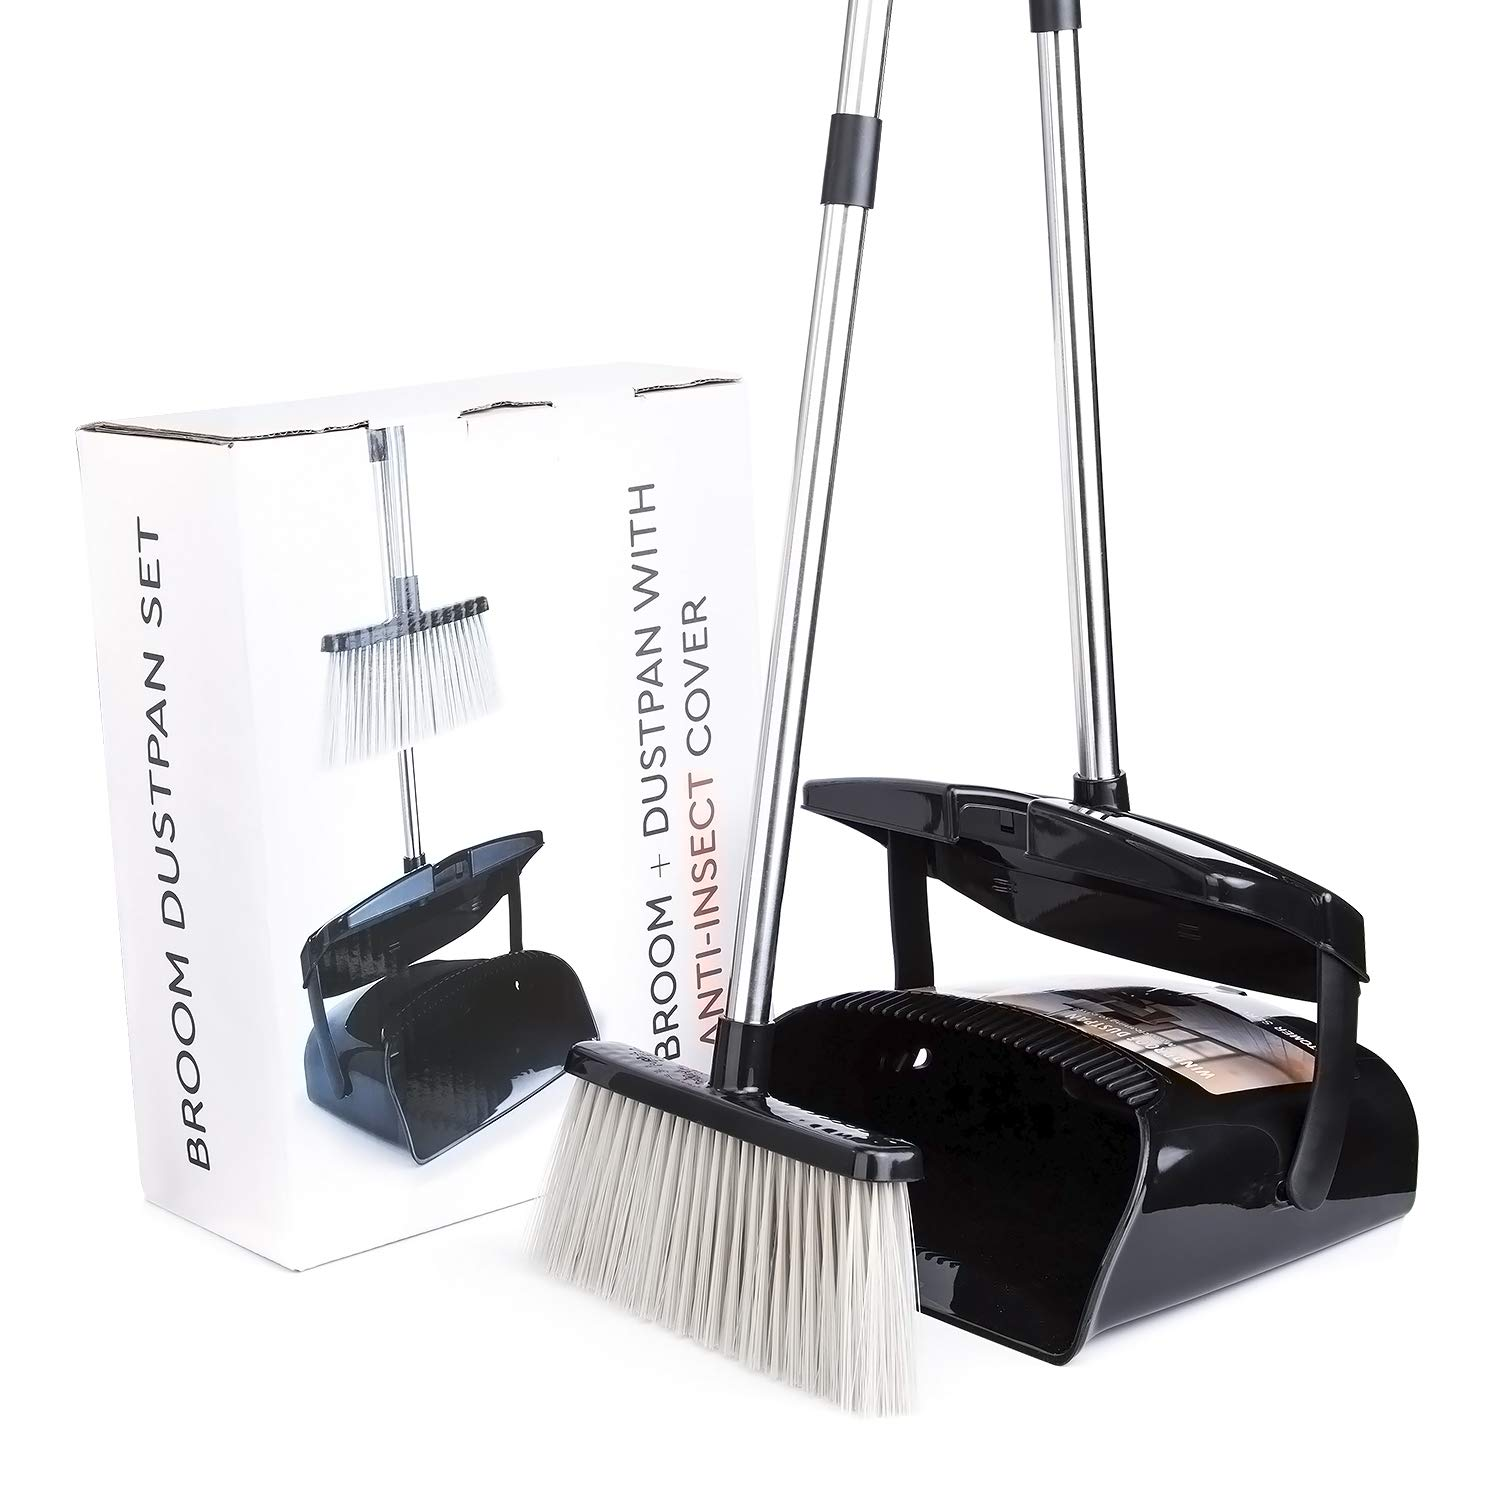 Broom and Dustpan Set with Lid [2019 New Design] Outdoor Indoor Broom Dust Pan 3 Foot Angle Heavy Push Combo Upright Long Handle for Kids Garden Pet Dog Hair Wood Floor Sweep Kitchen House (Black 02) by OLLSDIRE (Image #7)